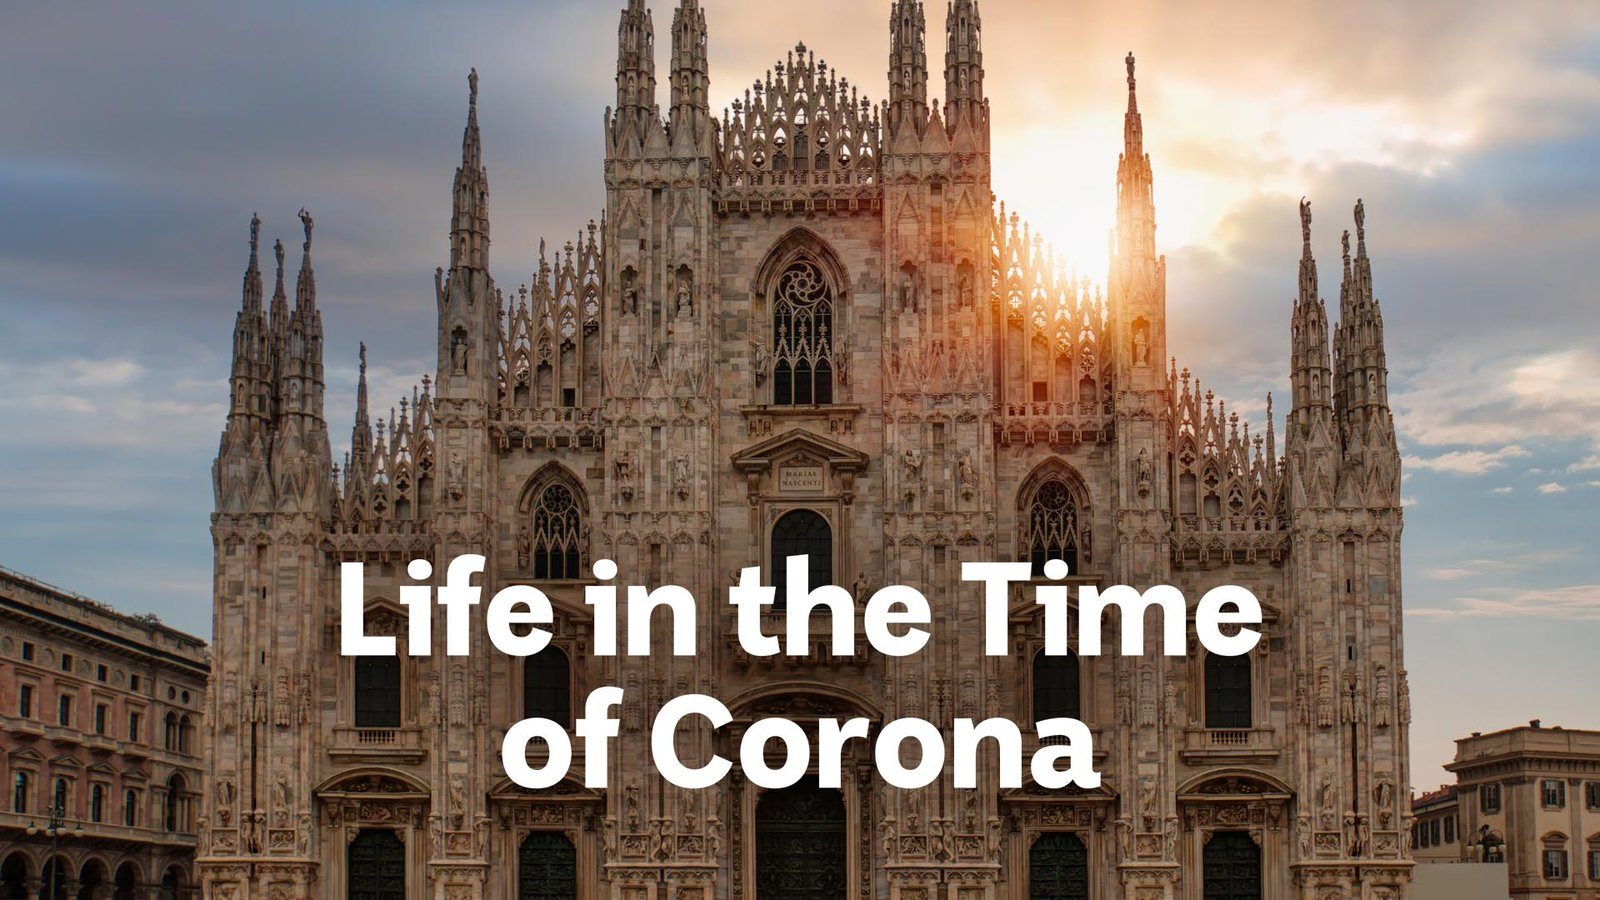 Life in the Time of Corona